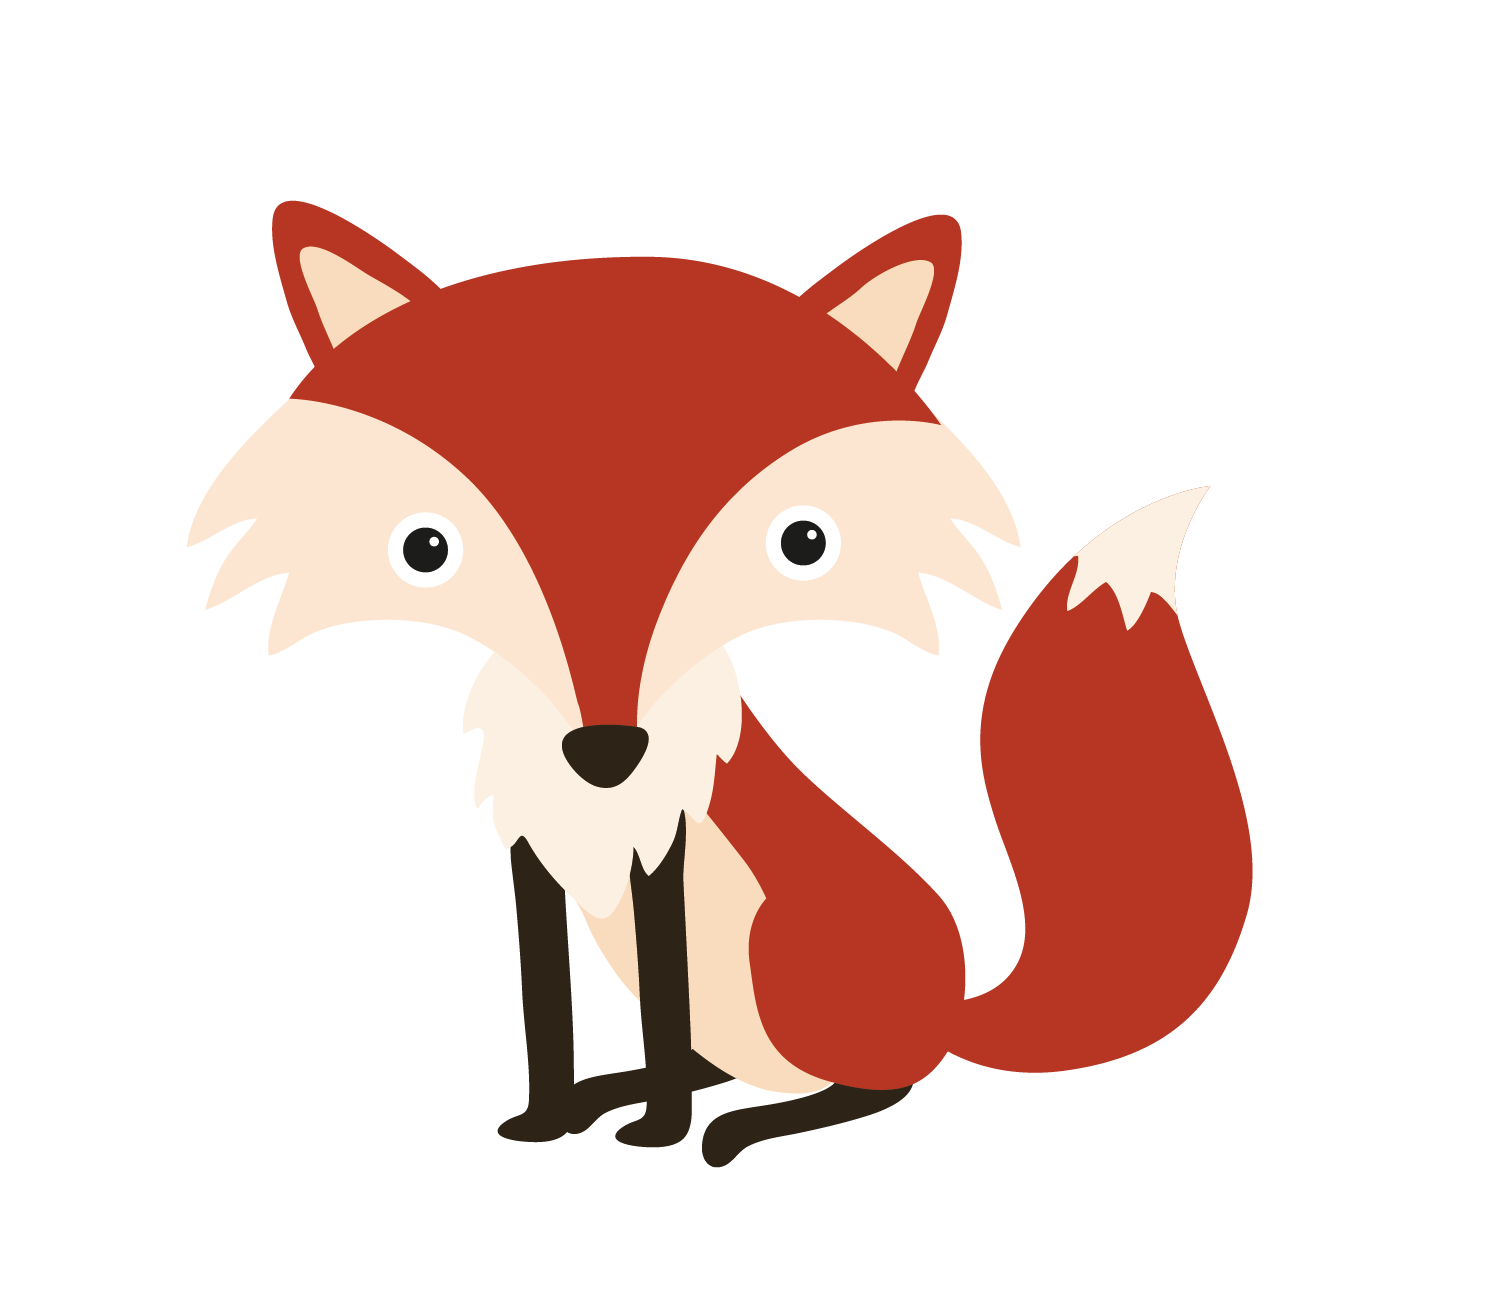 Kind clipart vertebrate animal. Red fox farm matching